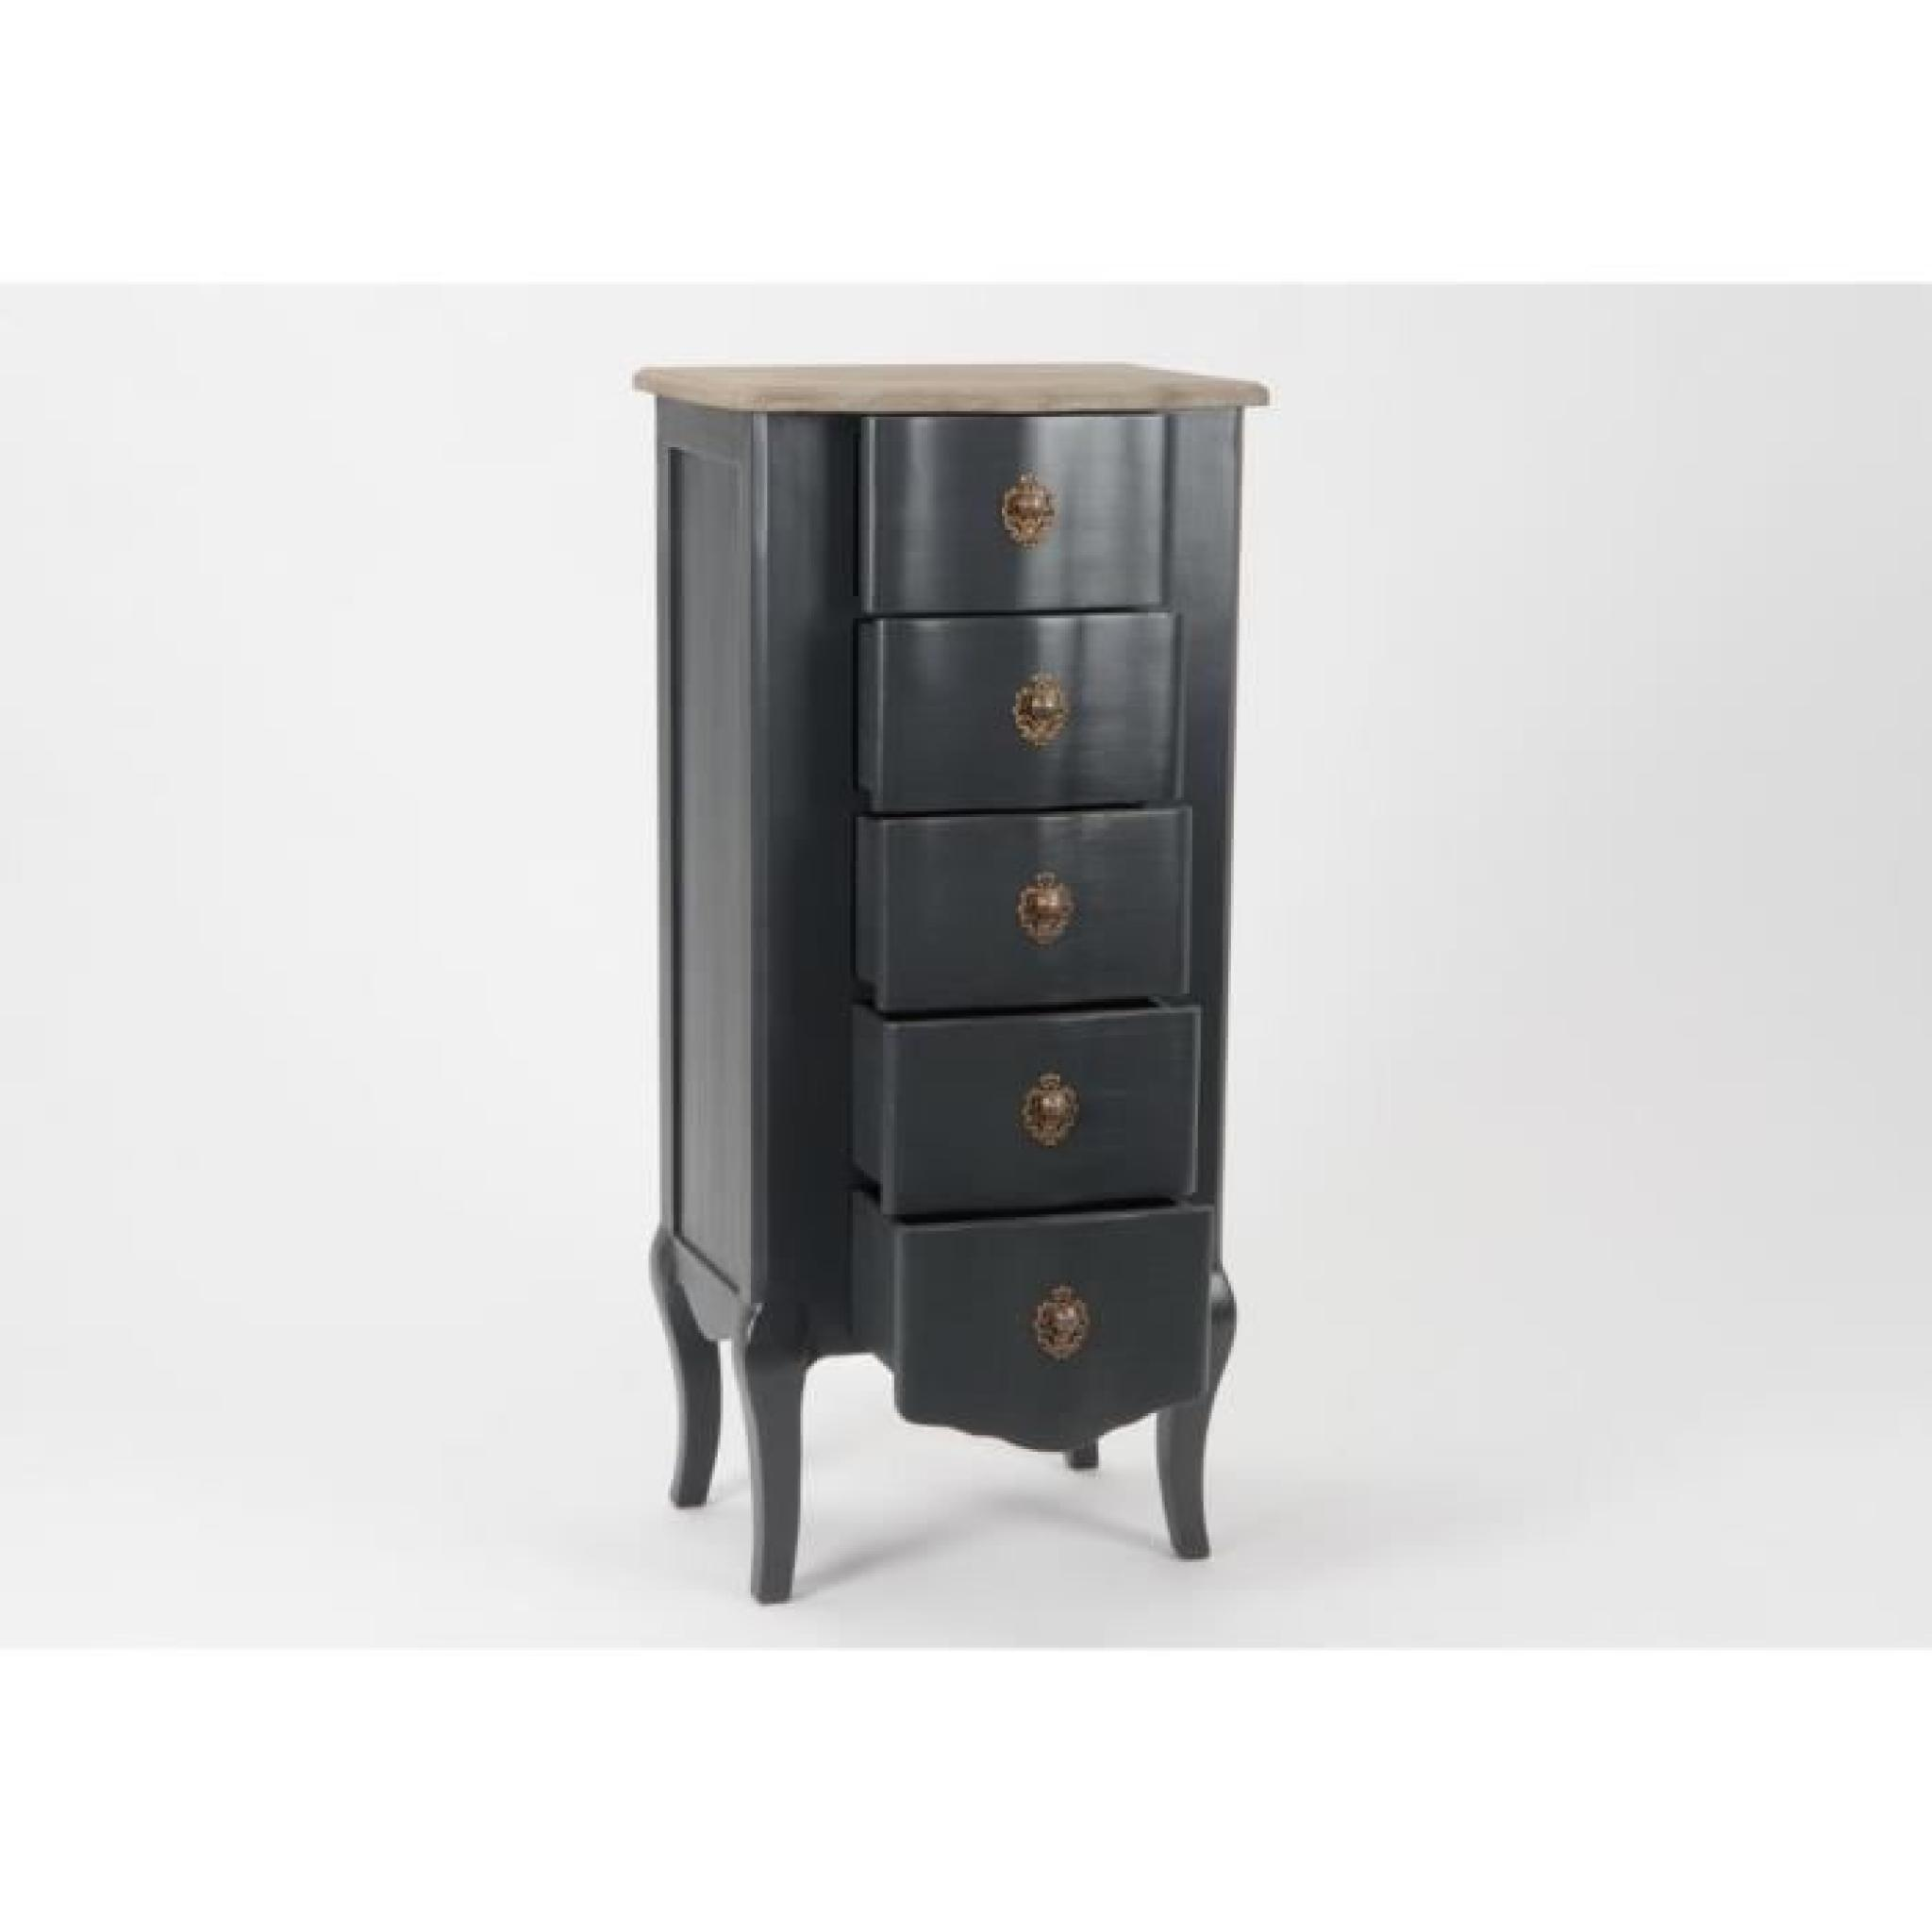 chiffonnier noir c lestine amadeus achat vente commode pas cher couleur et. Black Bedroom Furniture Sets. Home Design Ideas